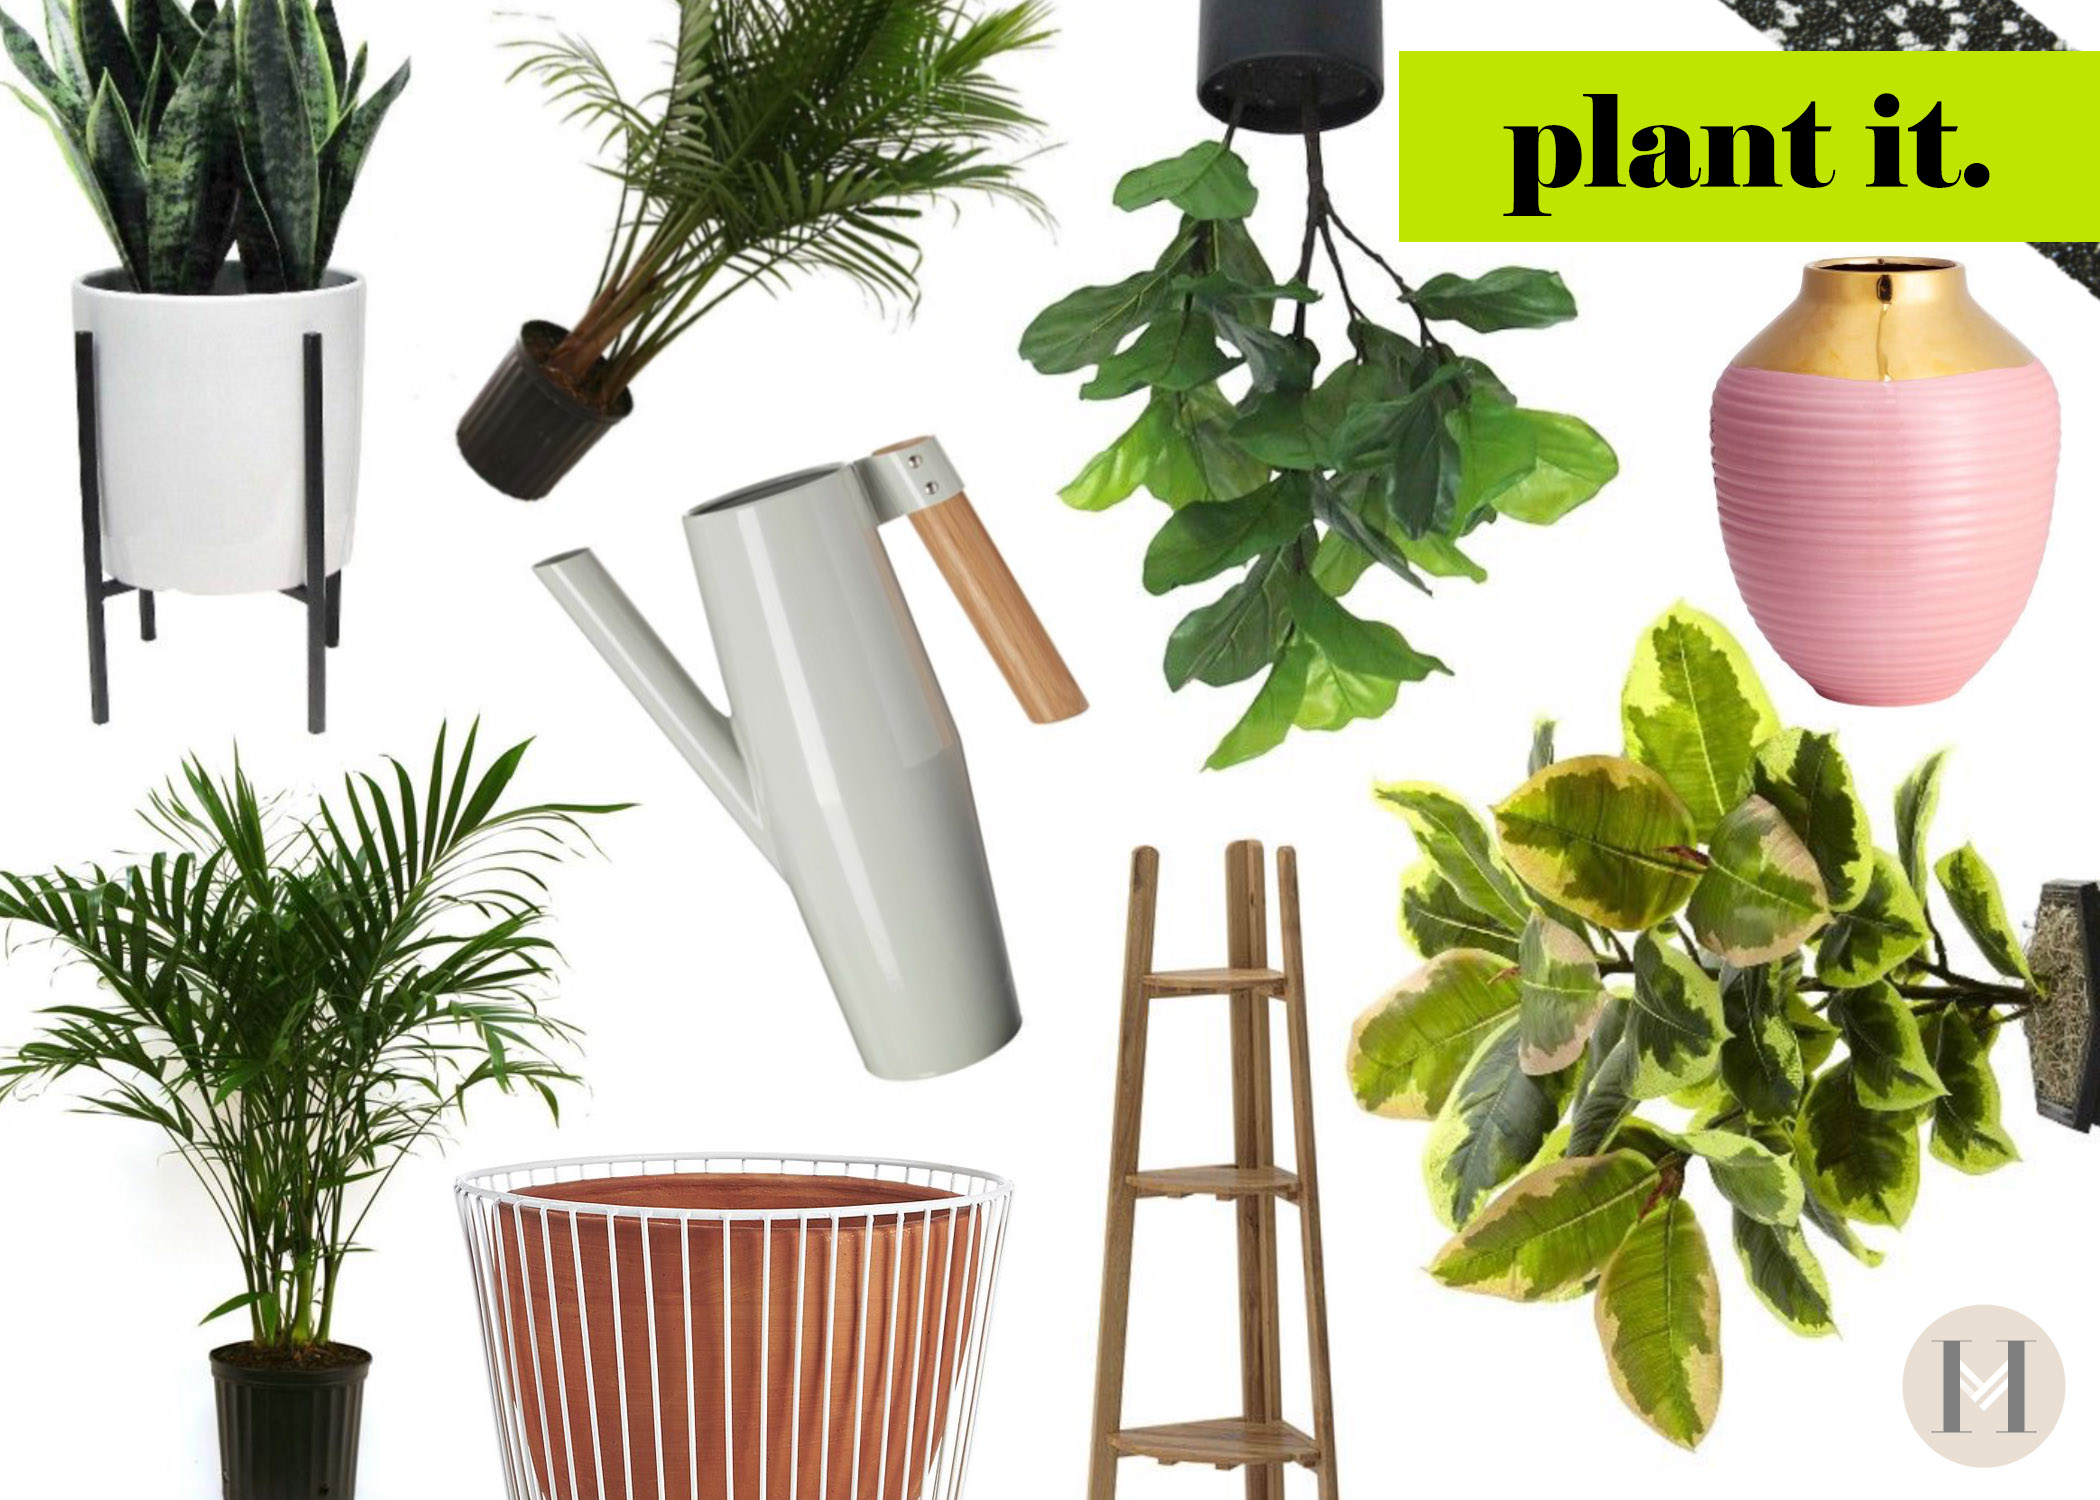 Hautemommie says, add plants to your home to bring nature in this spring